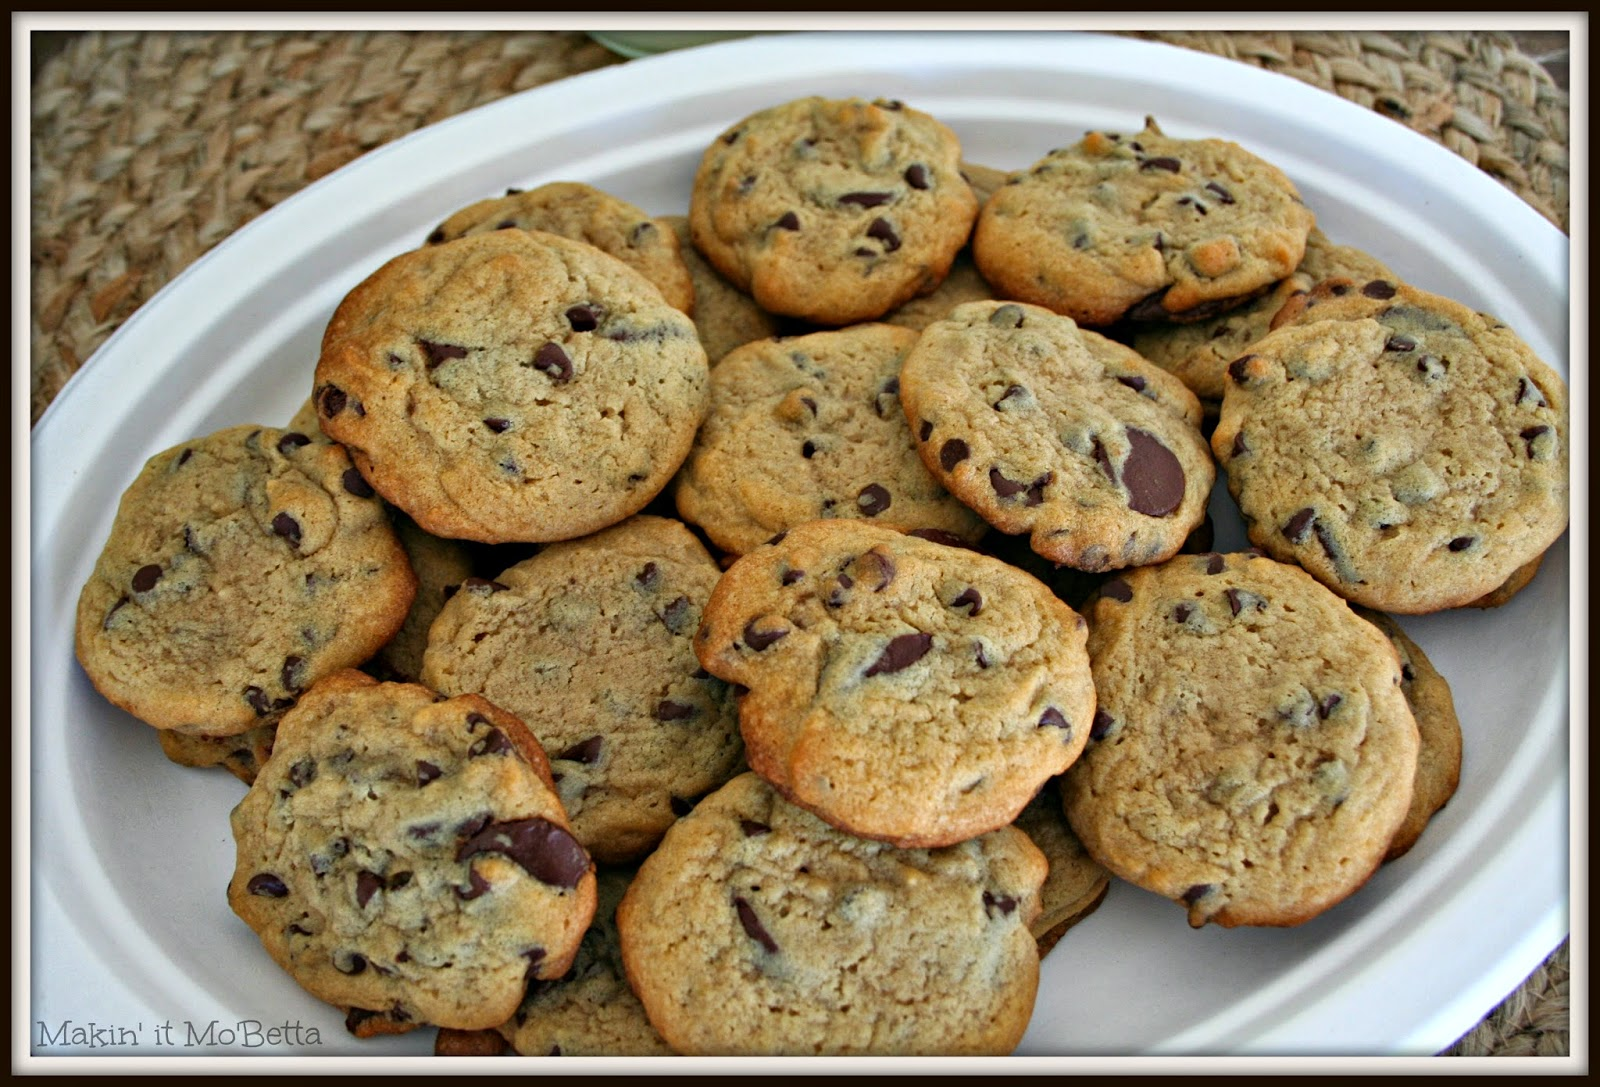 The Ultimate Chocolate Chip Cookies - Makin' it Mo'Betta